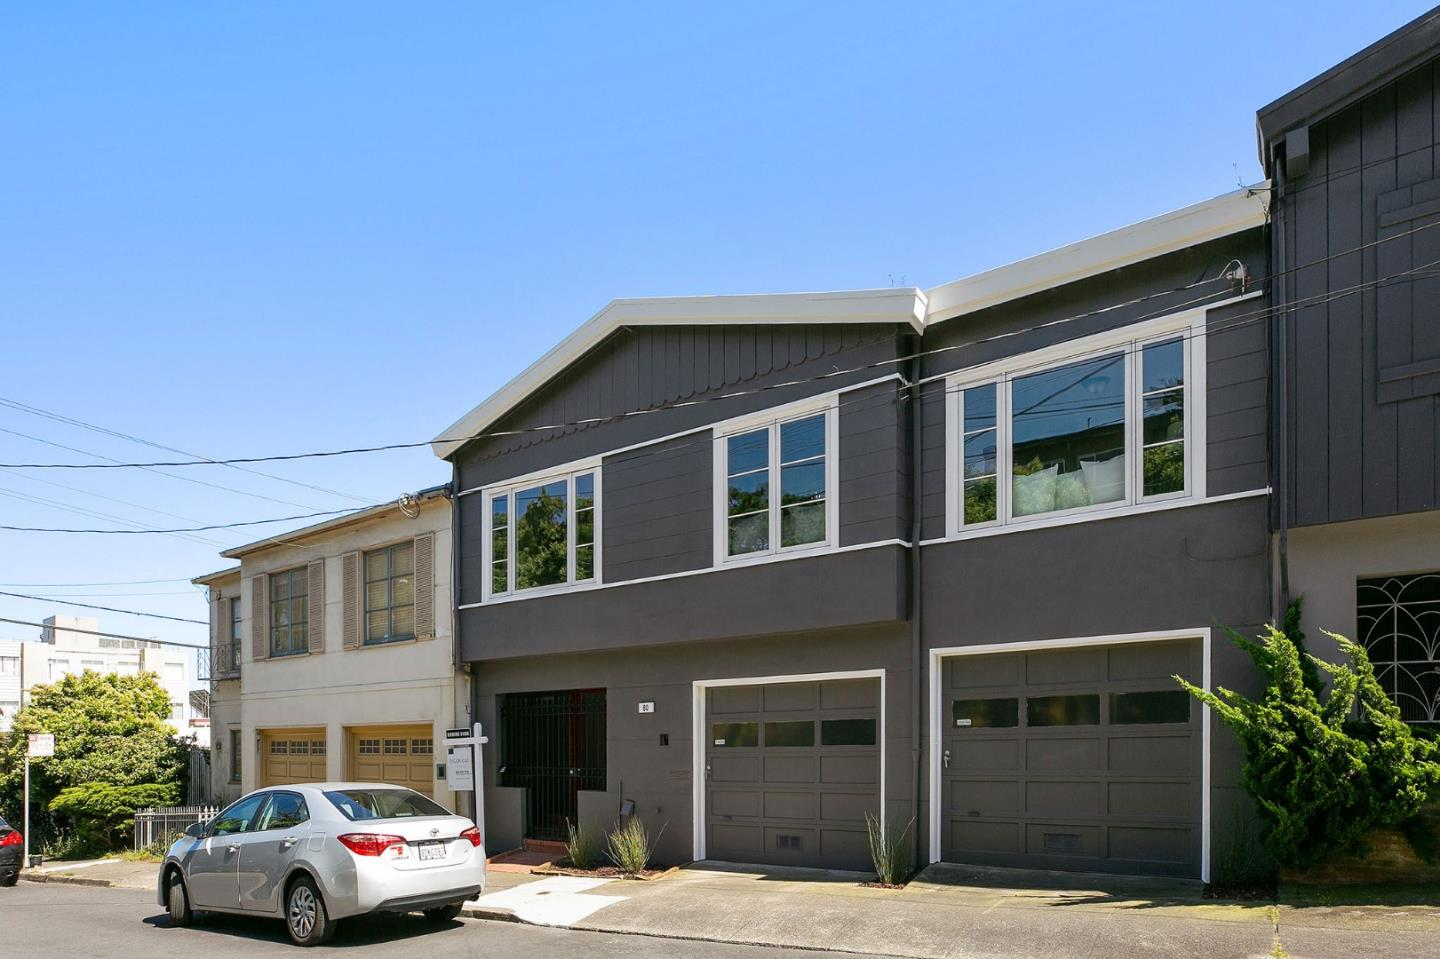 Image not available for 80 Dawnview Way, San Francisco CA, 94131